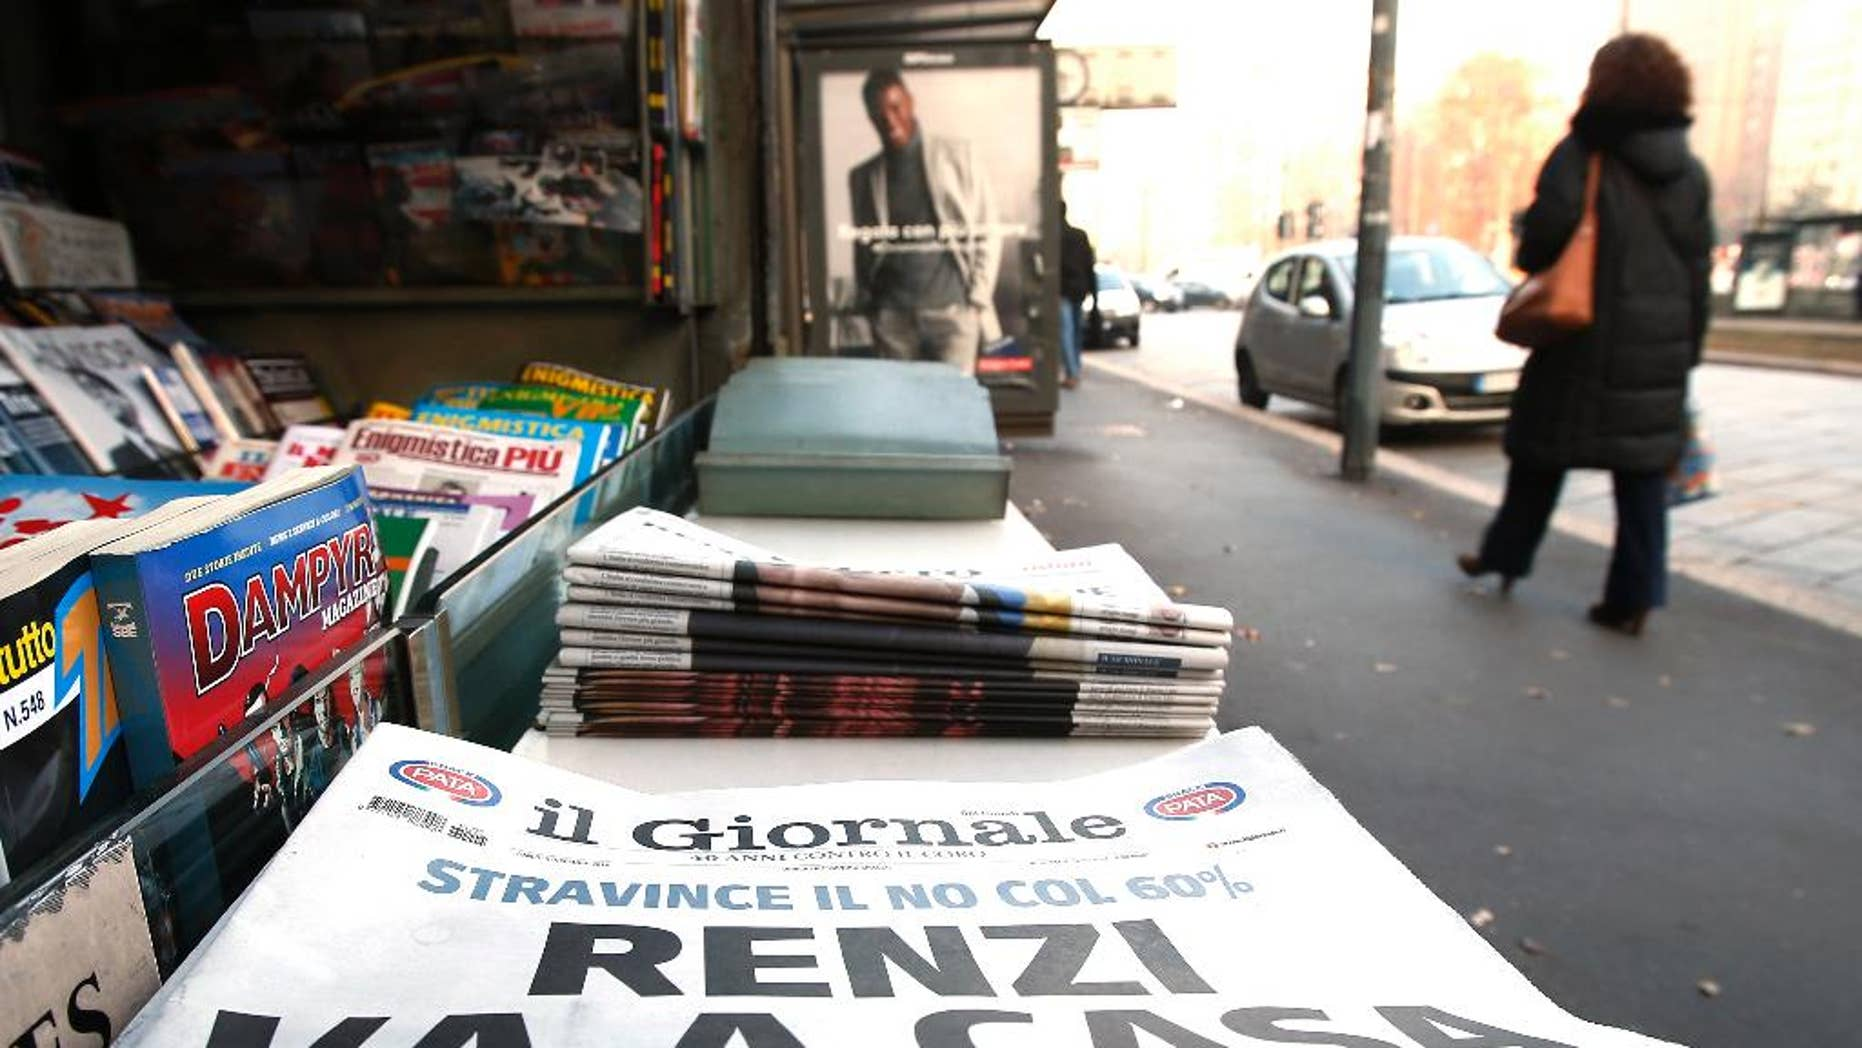 "A newspaper headline reads in Italian ""Renzi goes home"" following the result of Sunday's constitutional referendum, at a newsstand in Milan, Italy, Monday, Dec. 5, 2016. Italian voters dealt Premier Renzi a resounding rebuke early Monday by rejecting his proposed constitutional reforms, plunging Europe's fourth-largest economy into political and economic uncertainty. (AP Photo/Antonio Calanni)"